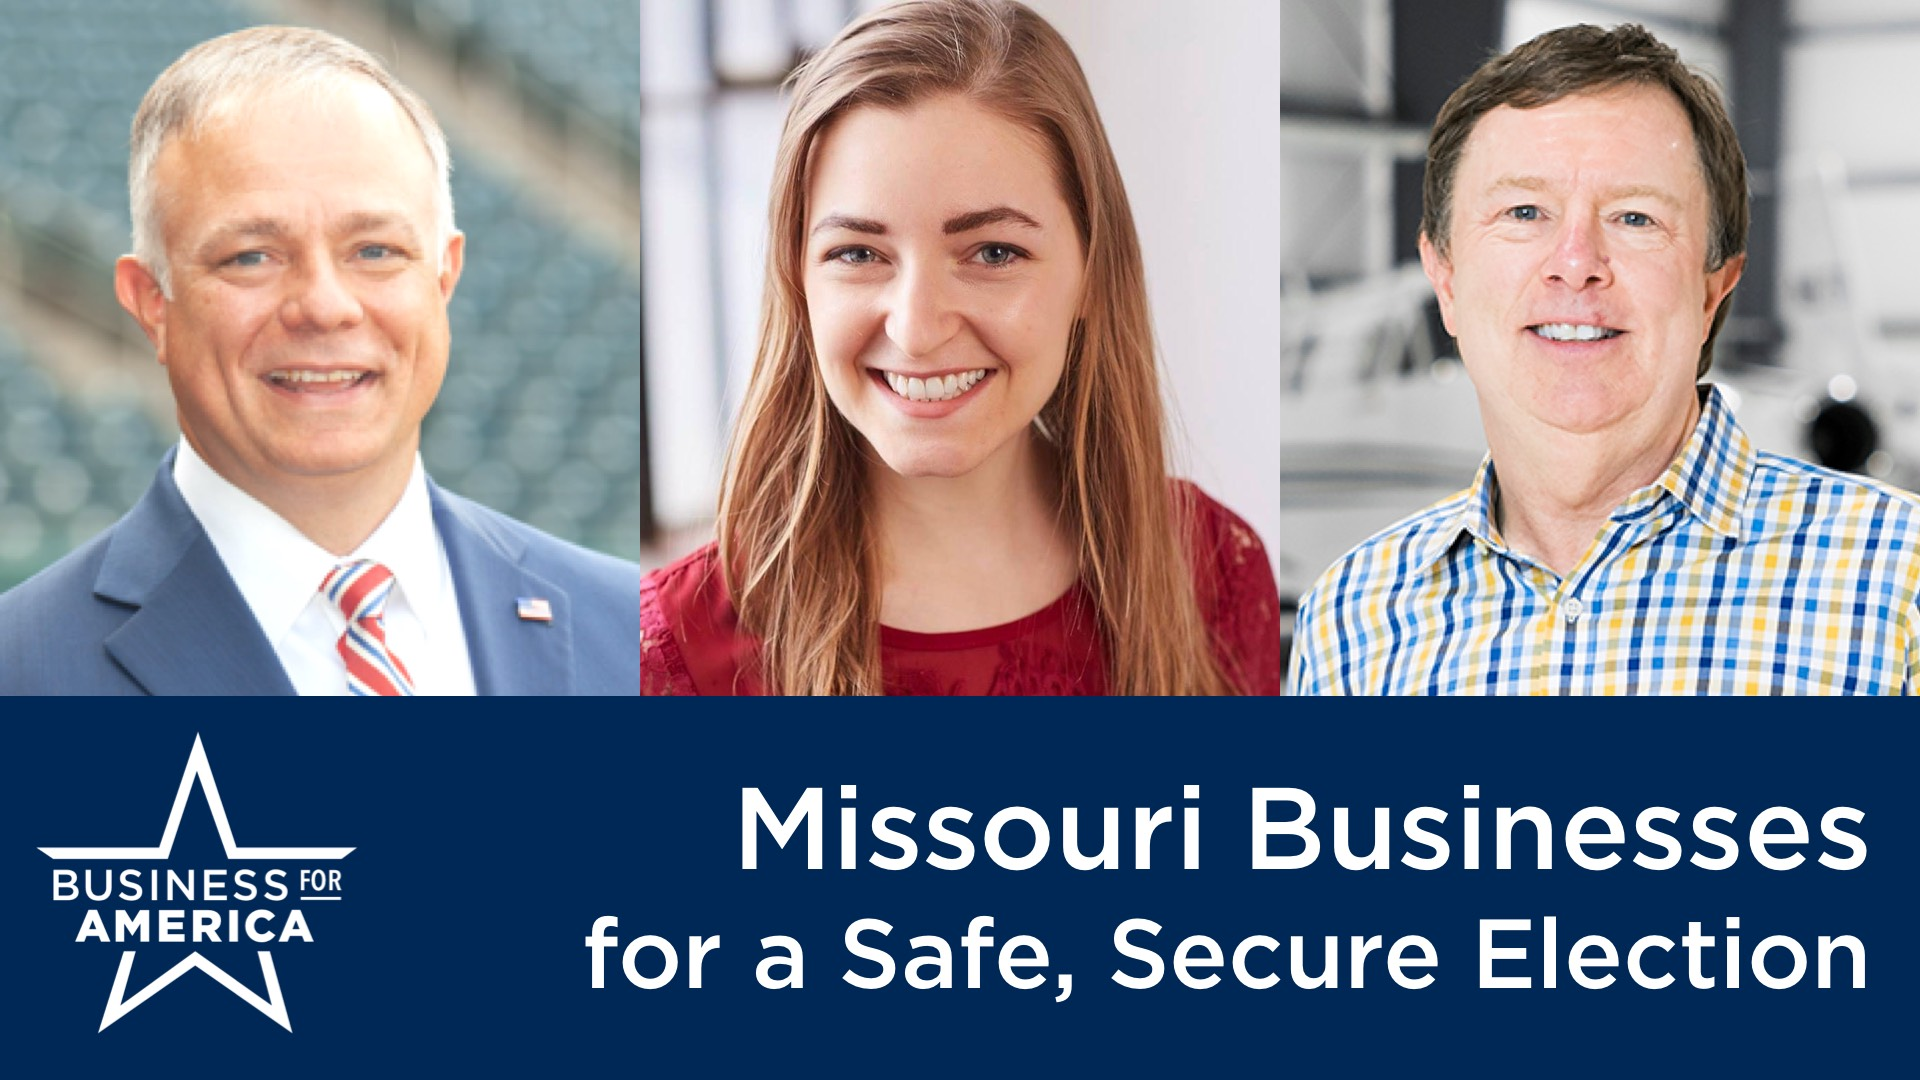 Missouri Businesses for a Safe, Secure Election